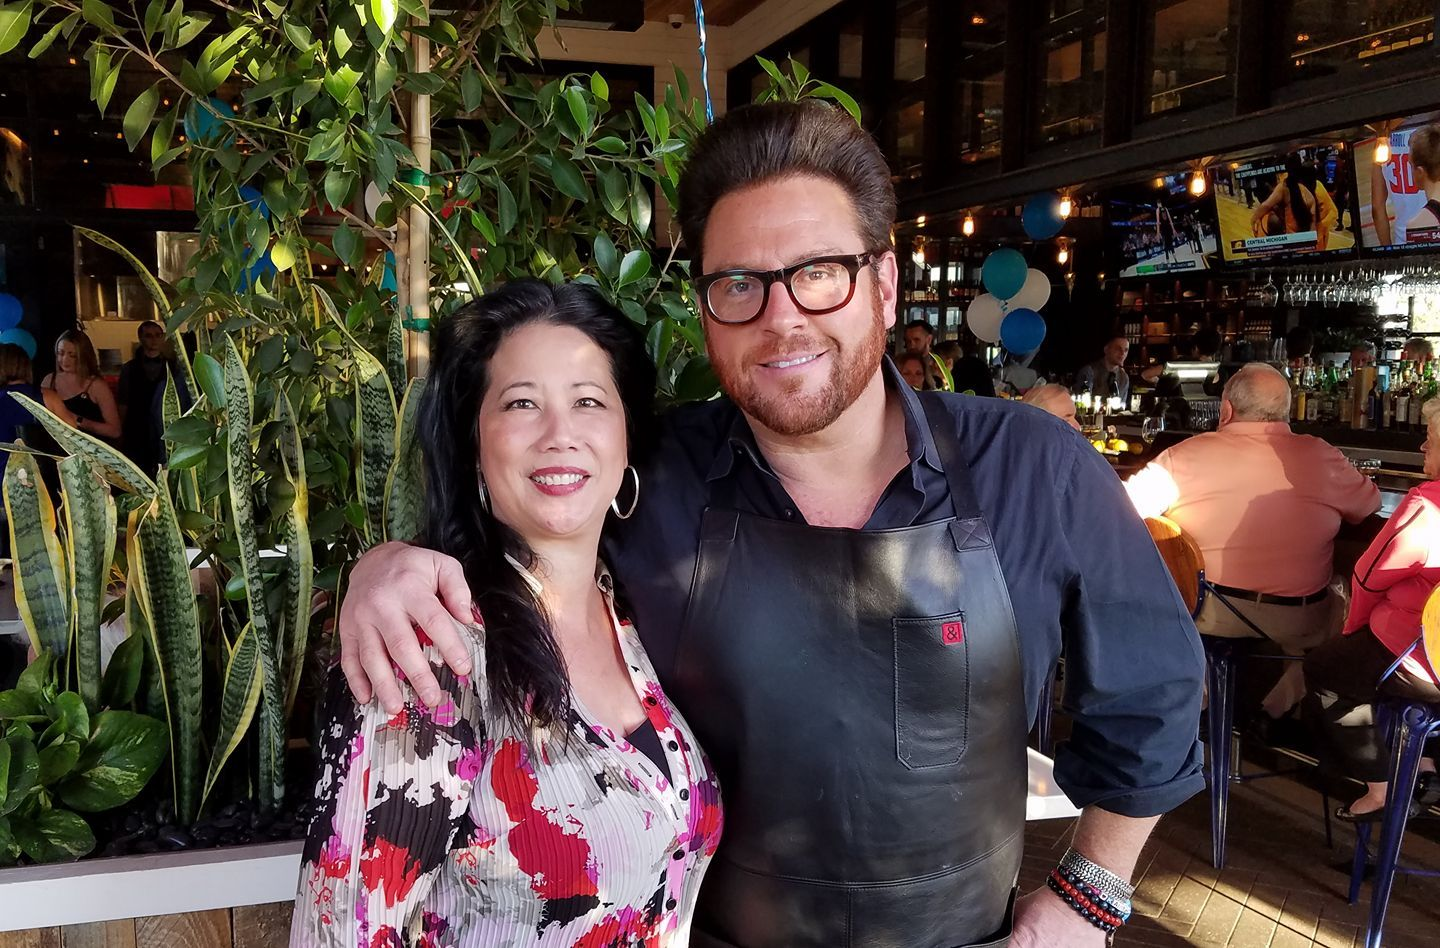 With chef, restauranteur and Foot Network judge and host Scott Conant